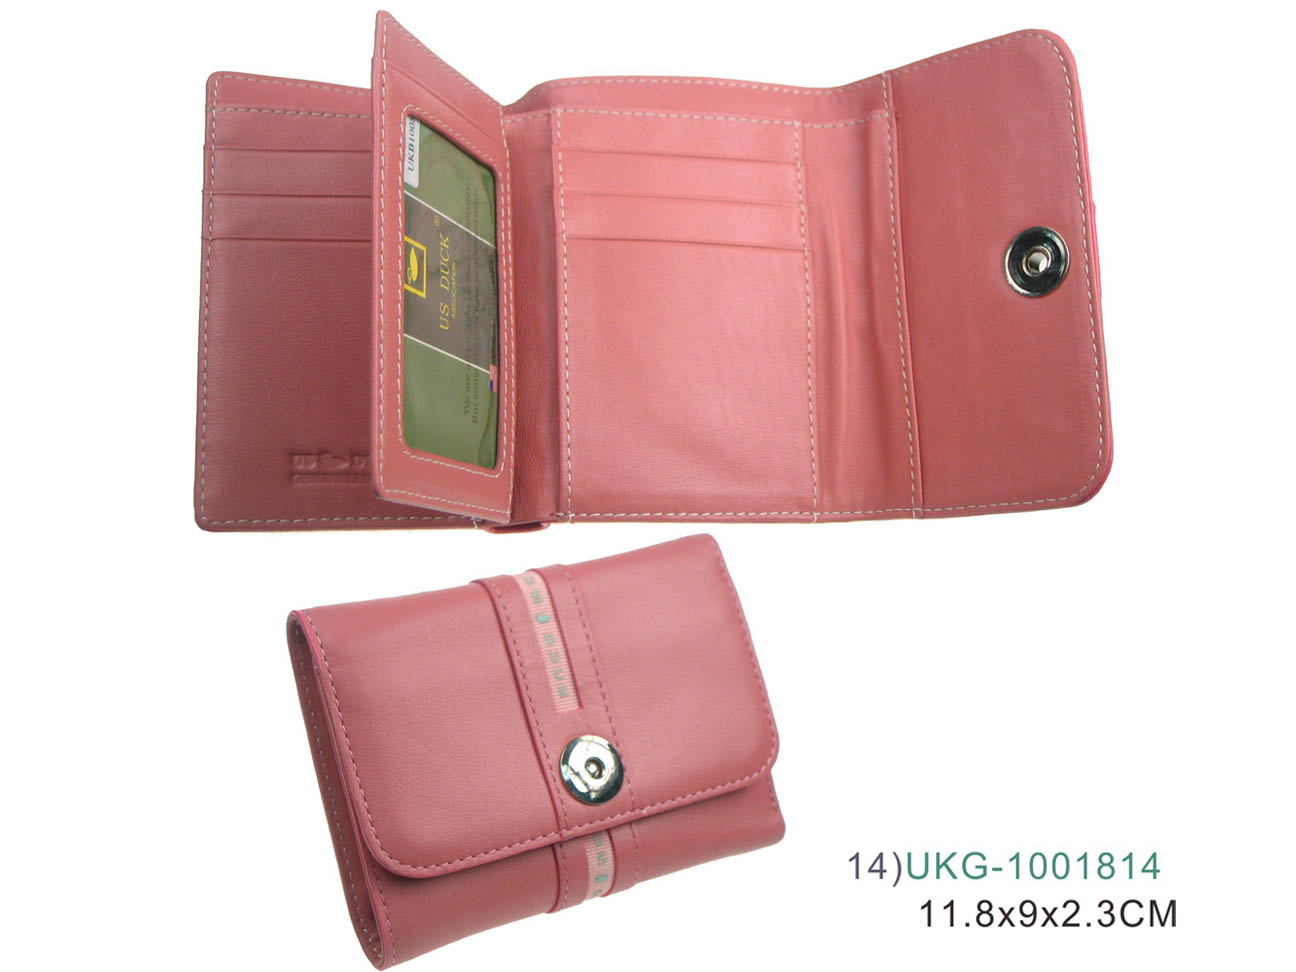 Female wallet UKG-1001814